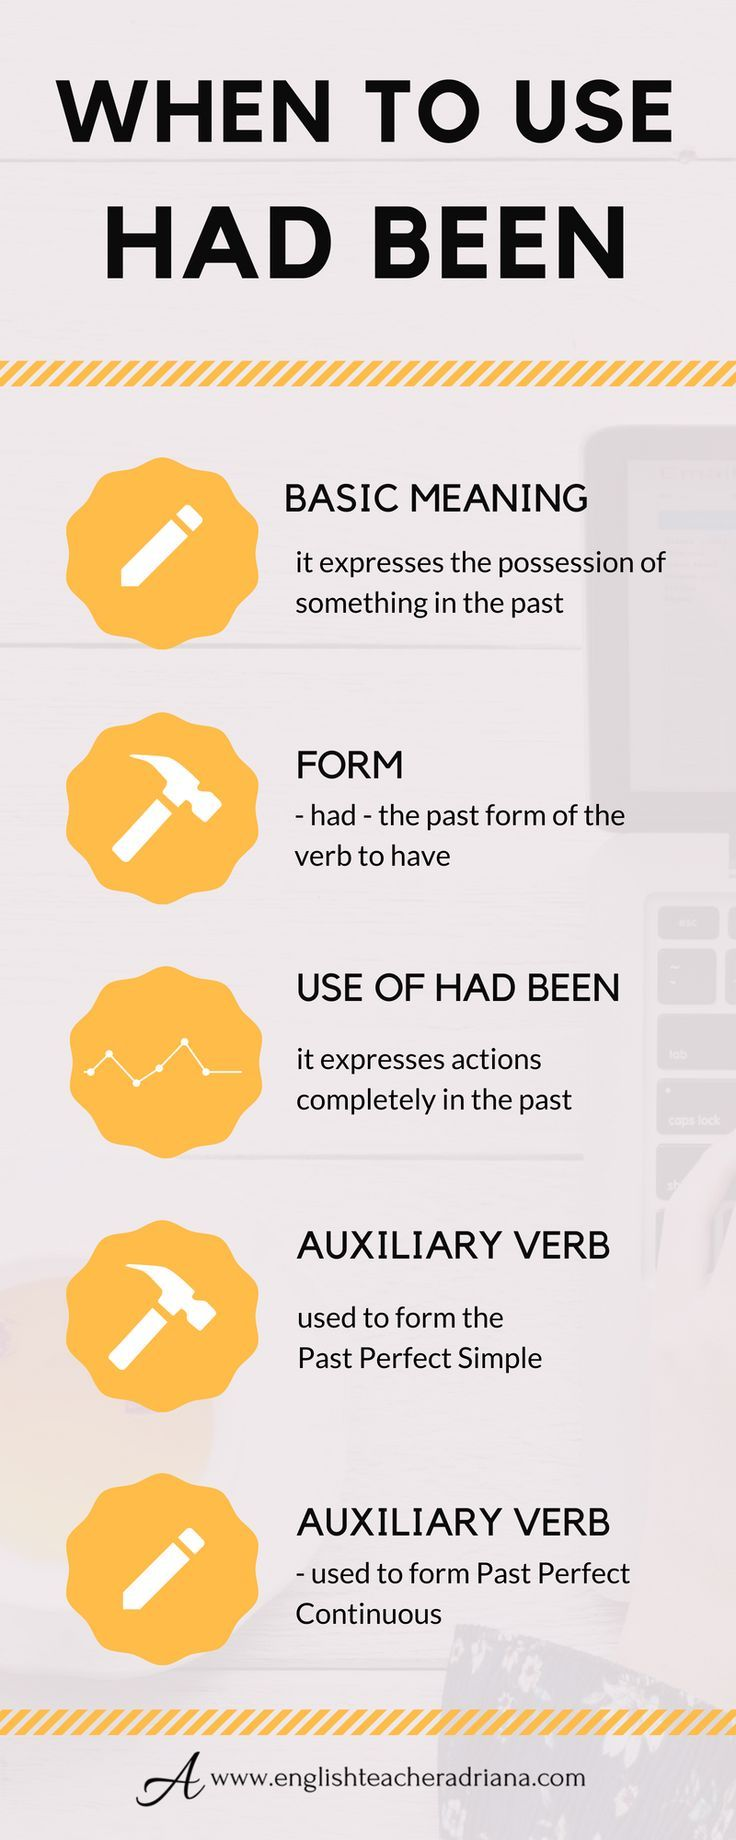 Have, had or has been? (When to make use of the Good Tenses in English)